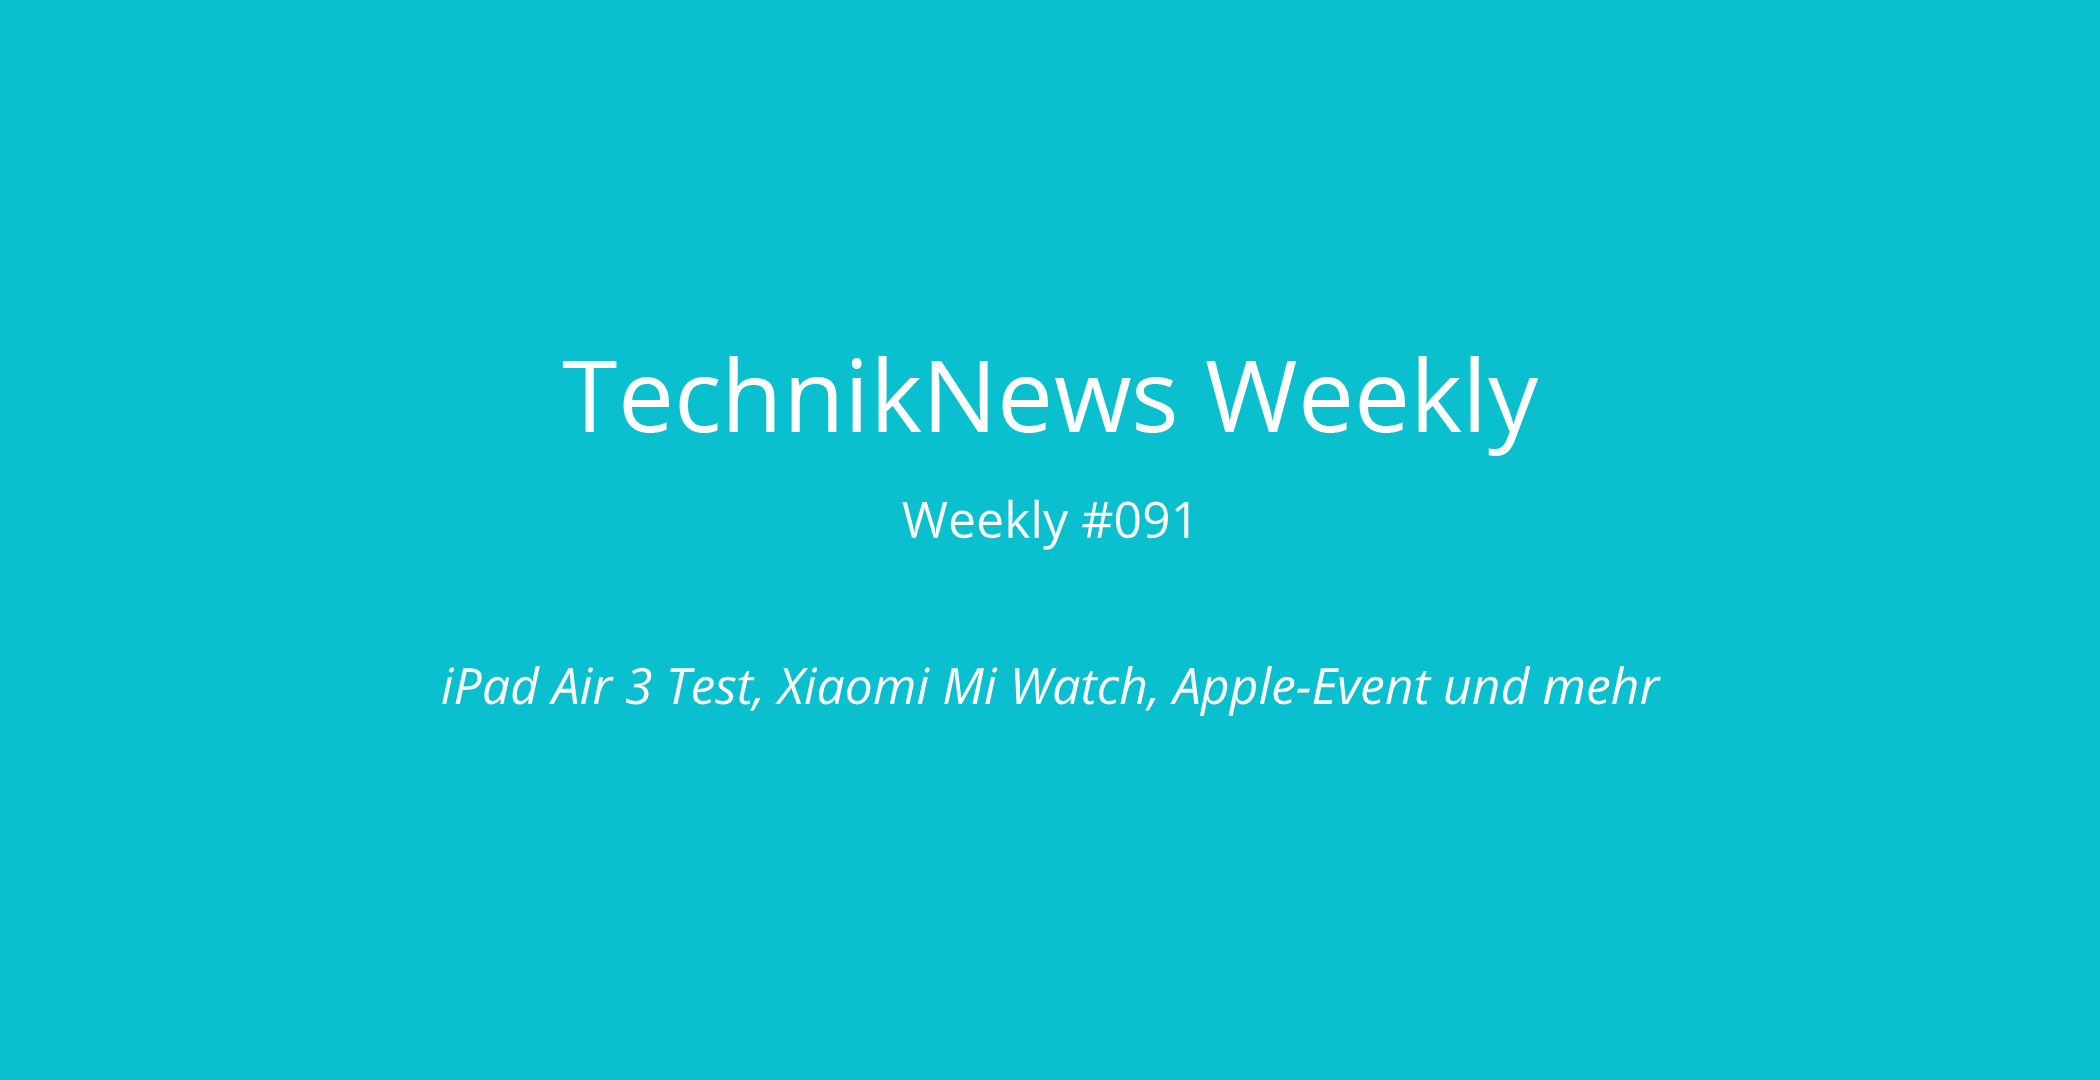 TechnikNews Weekly 091